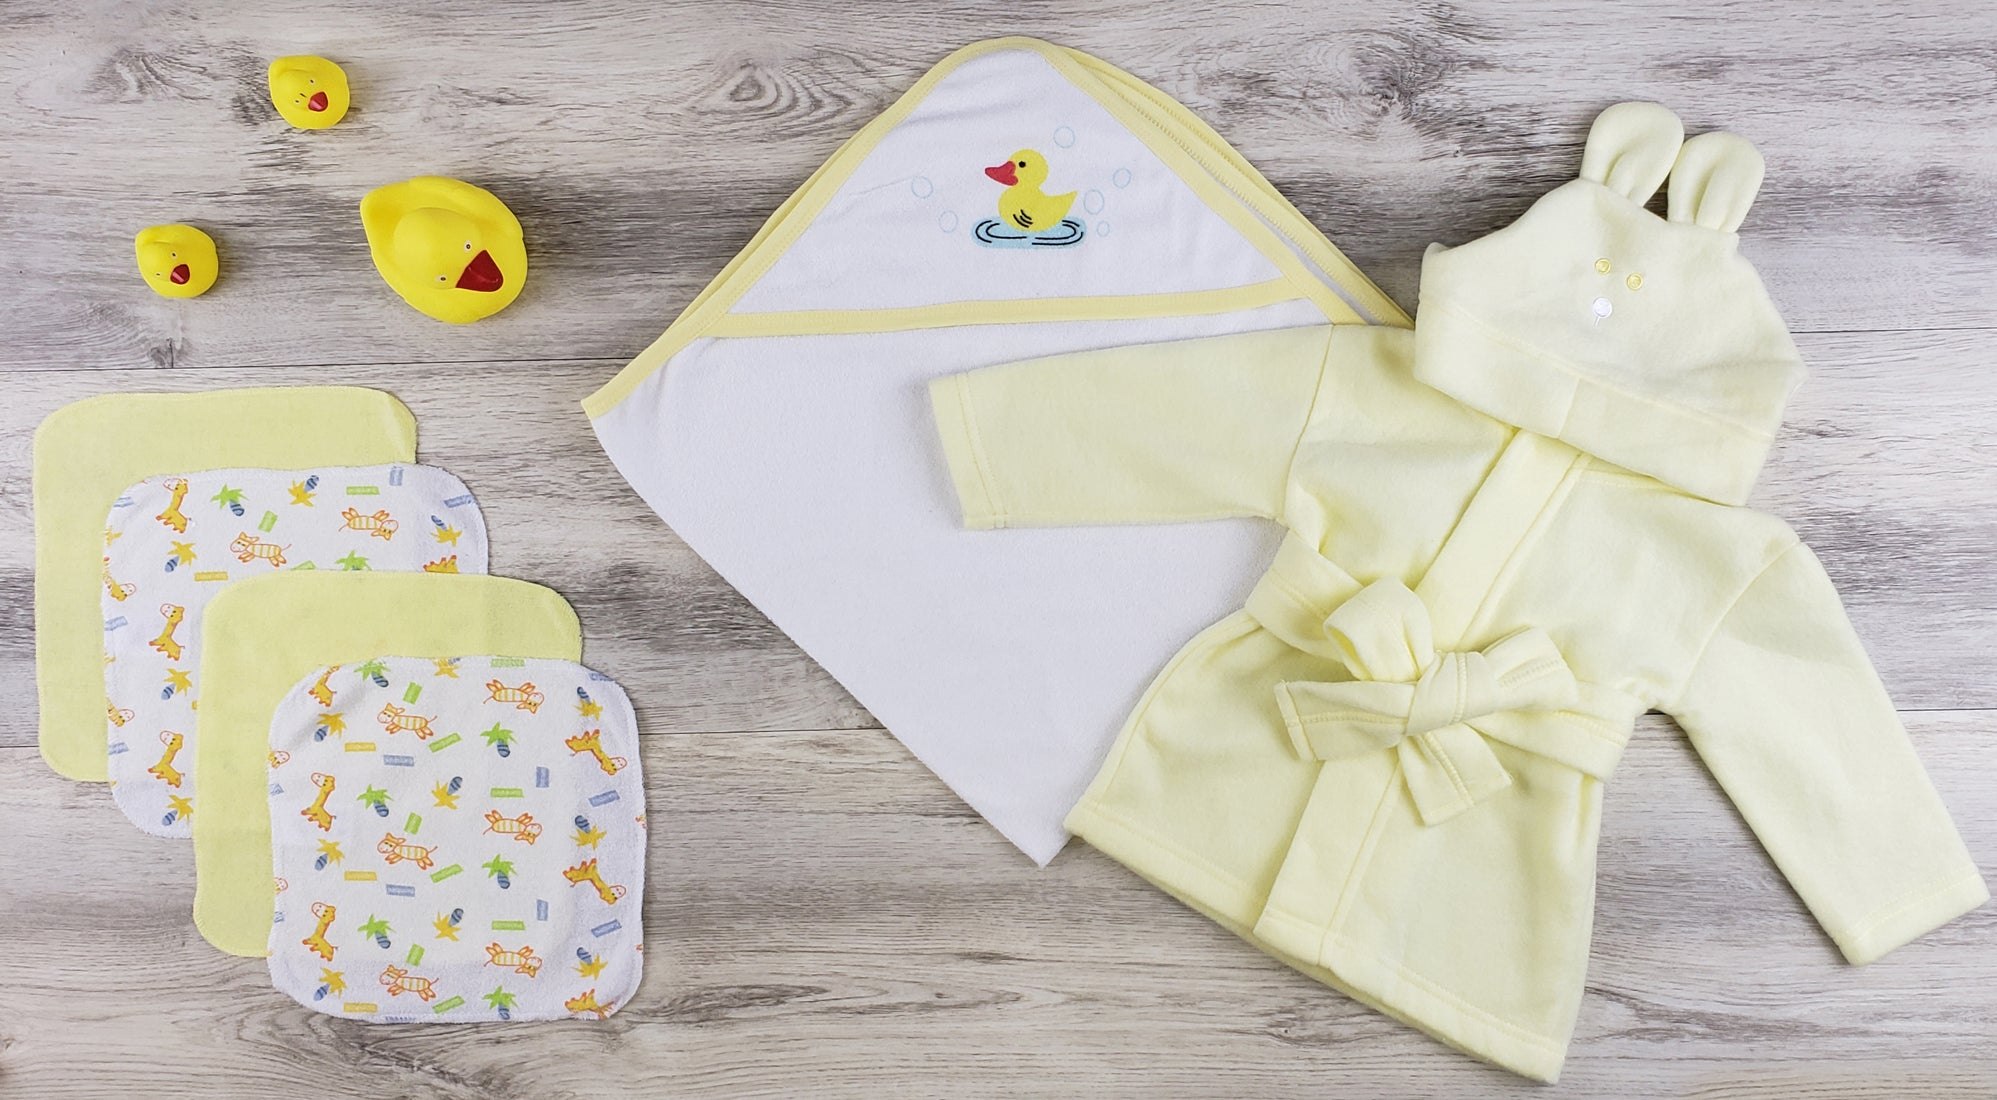 Bambini Hooded Towel, Wash Clothes and Robe